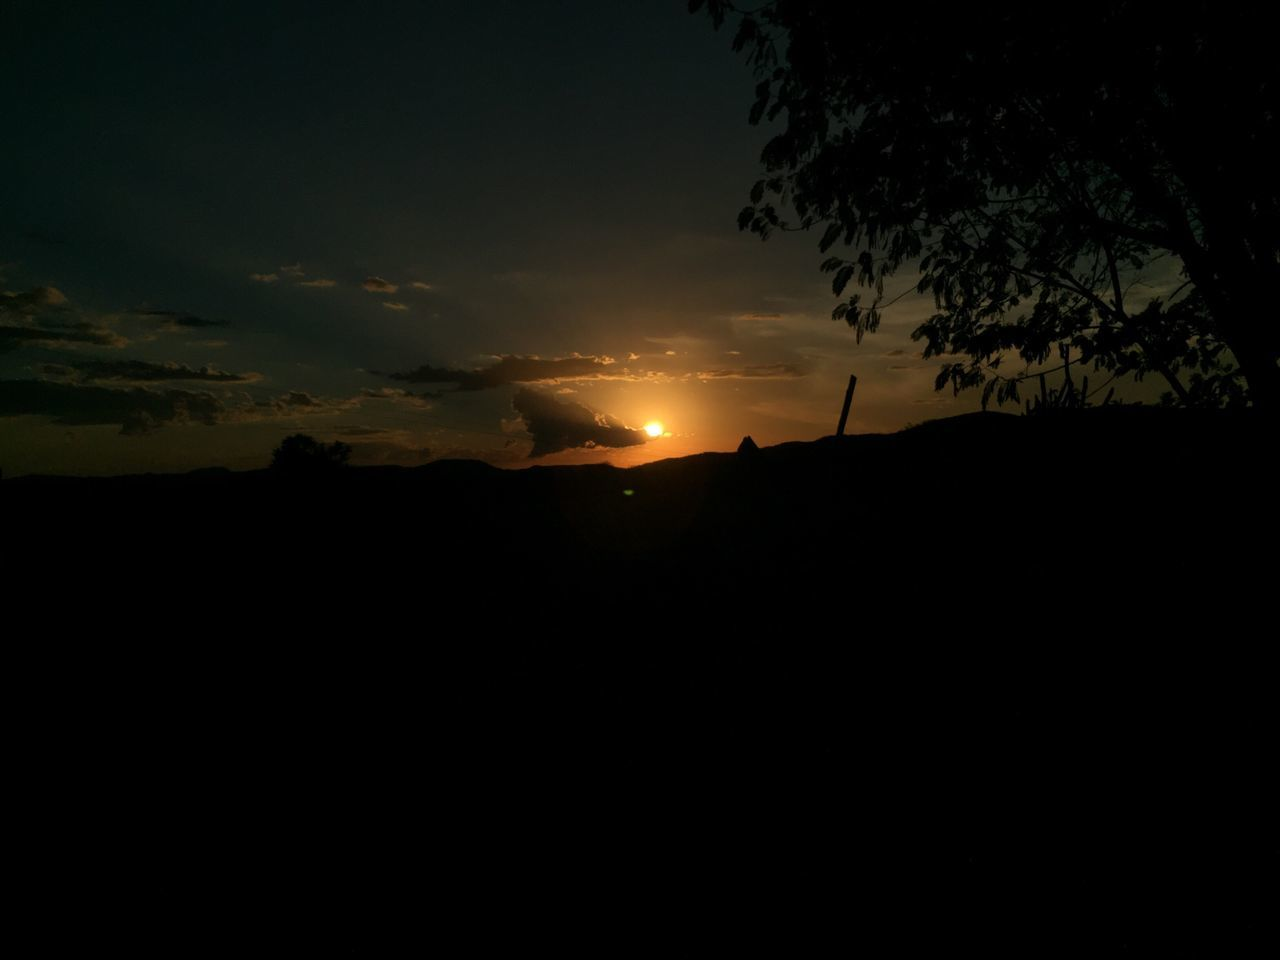 silhouette, sunset, nature, beauty in nature, sun, sky, tranquil scene, scenics, tranquility, no people, tree, outdoors, landscape, day